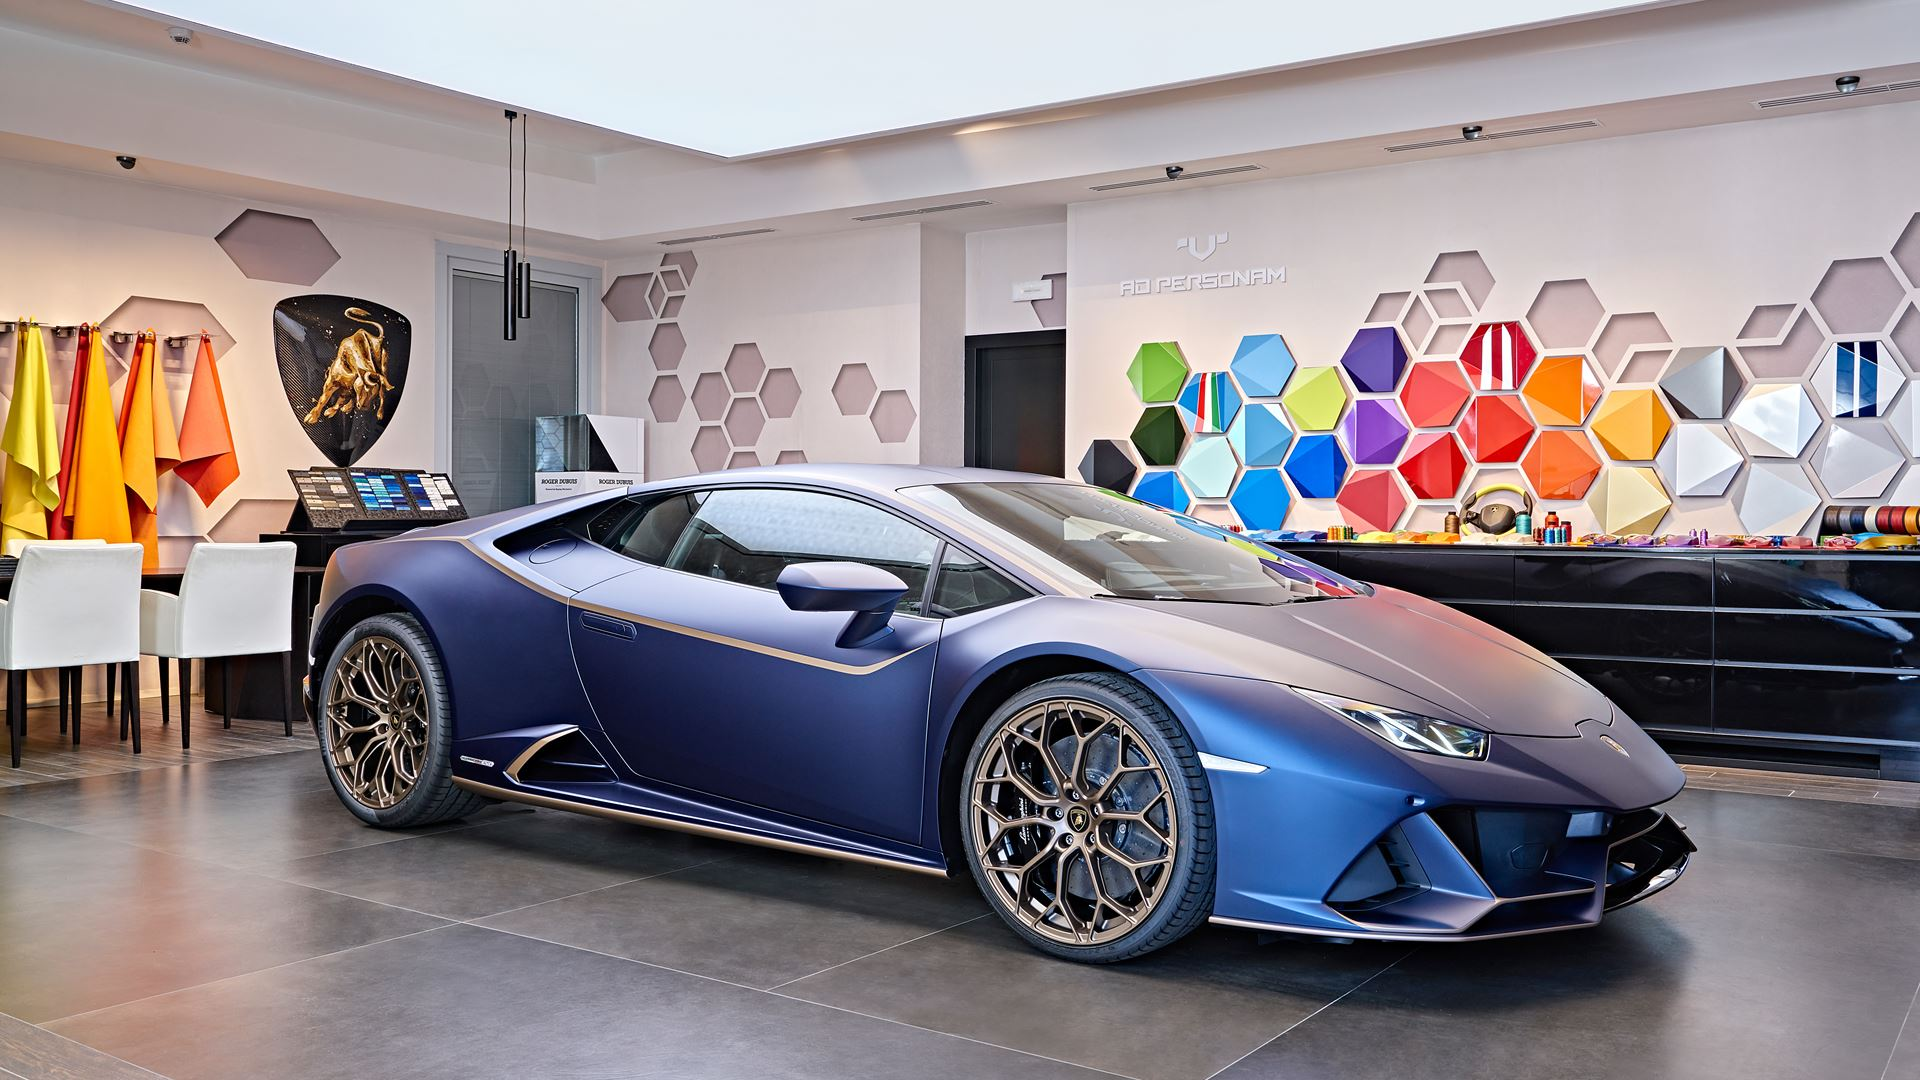 Lamborghini Mexico Commissions Special Edition Models To Commemorate 10 Years in the Region - Image 3